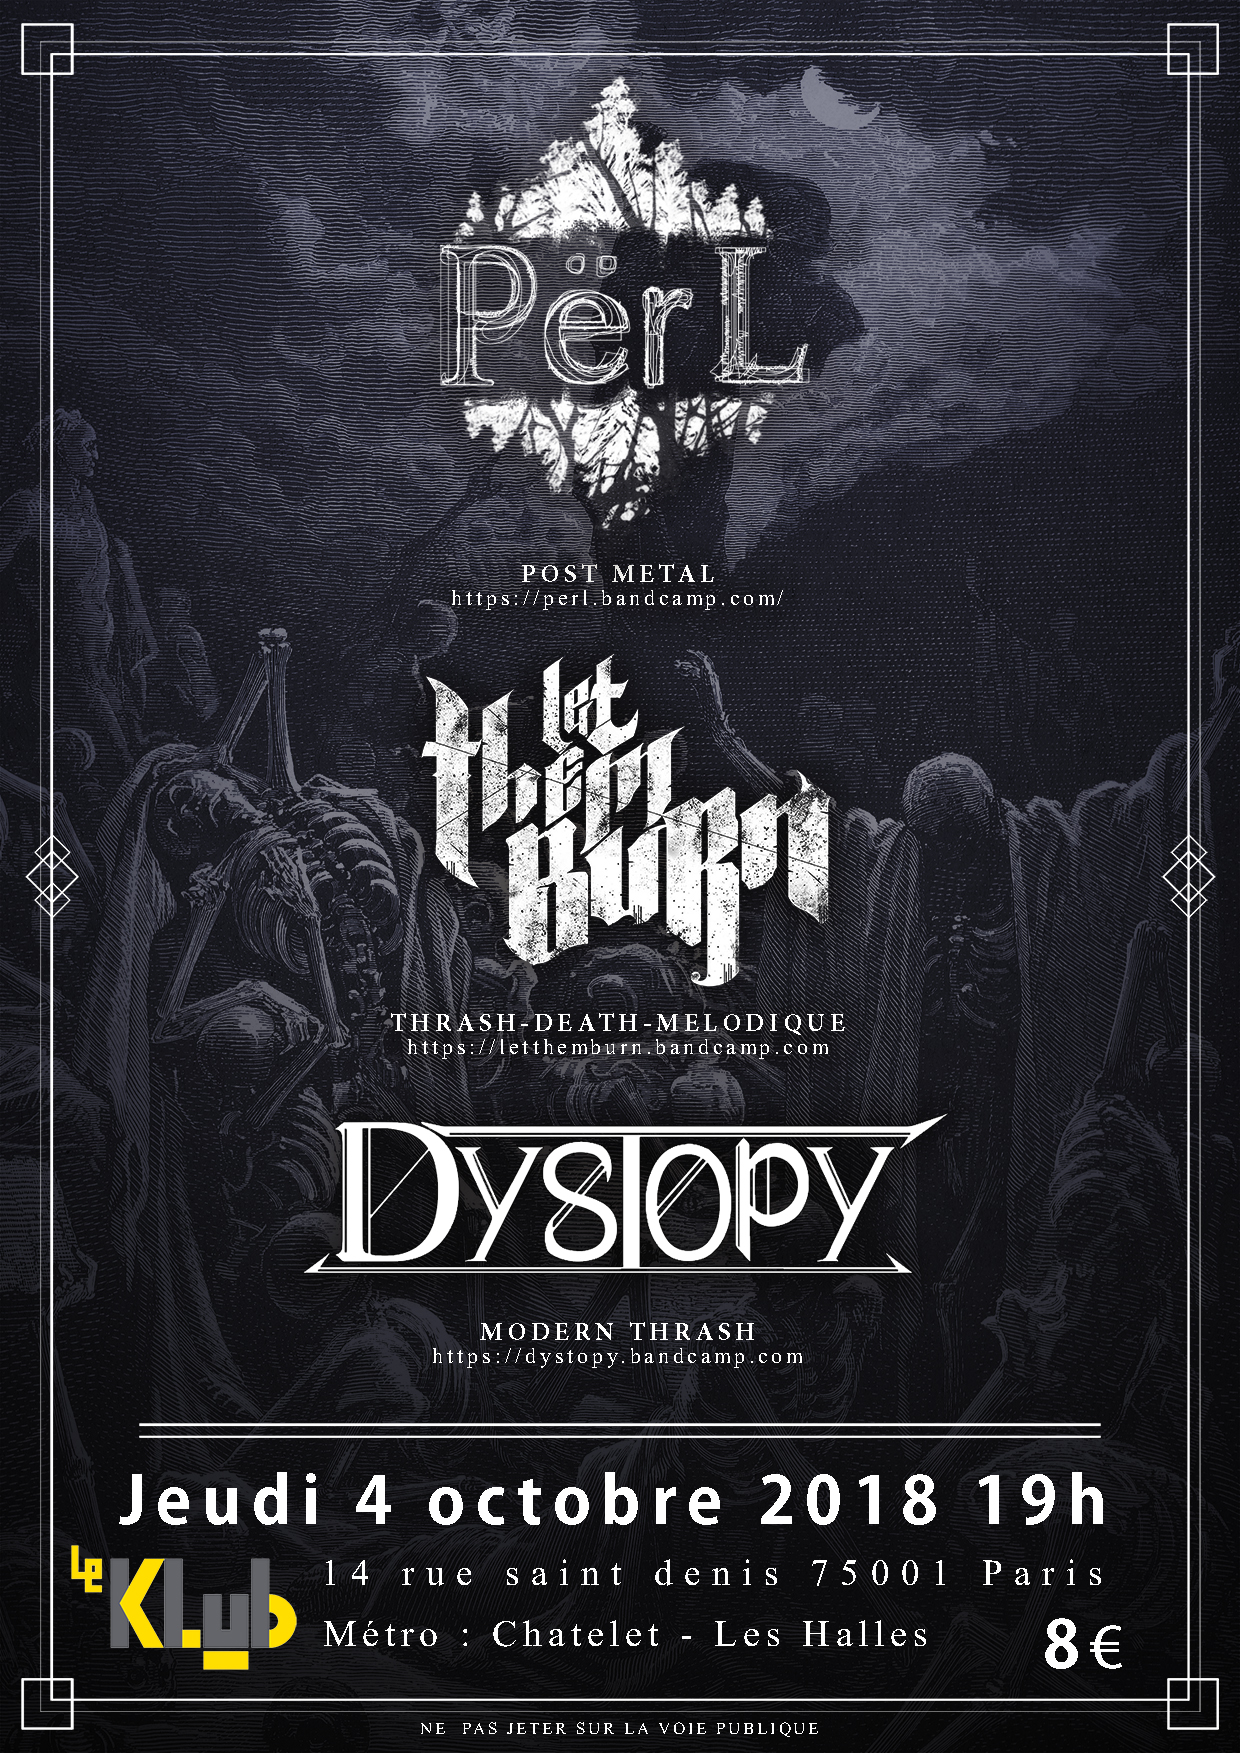 PERL + LET THEM BURN + DYSTOPY ■ 4.10